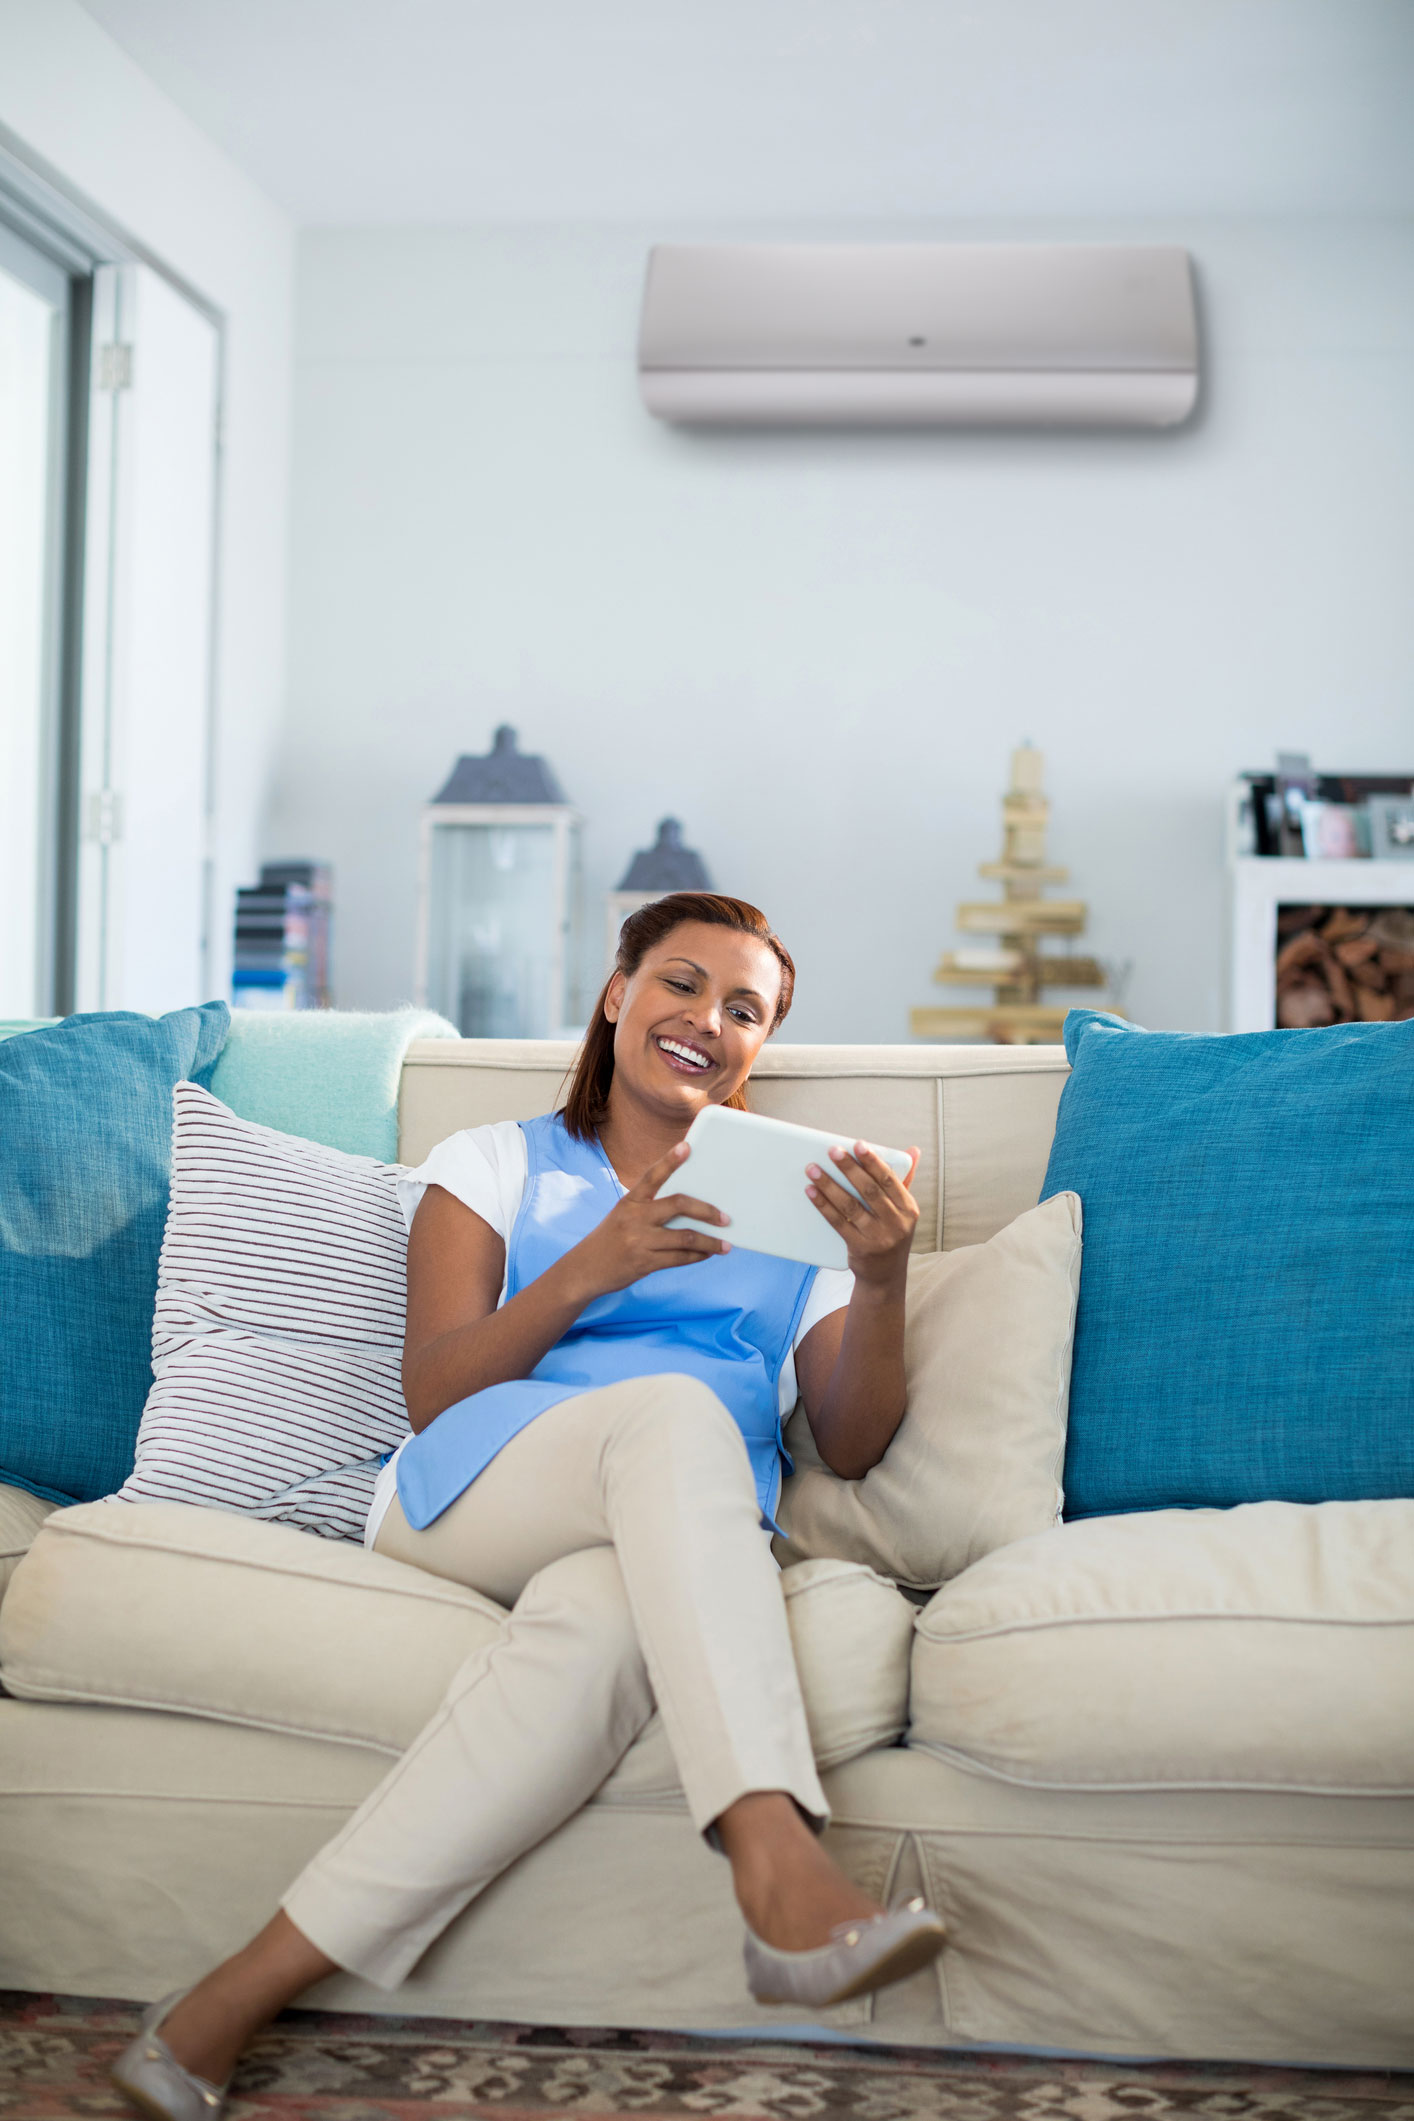 Carrier_Woman_in_Living_Room